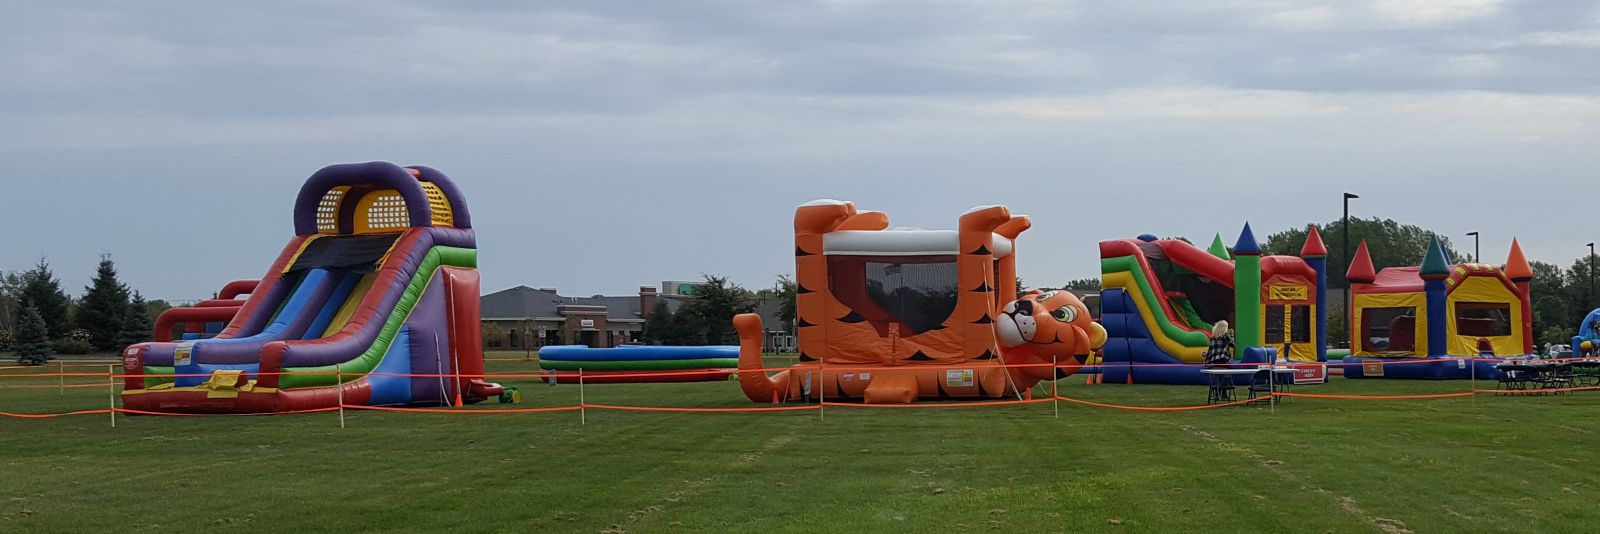 GIANT Slide Rental with other bounce houses